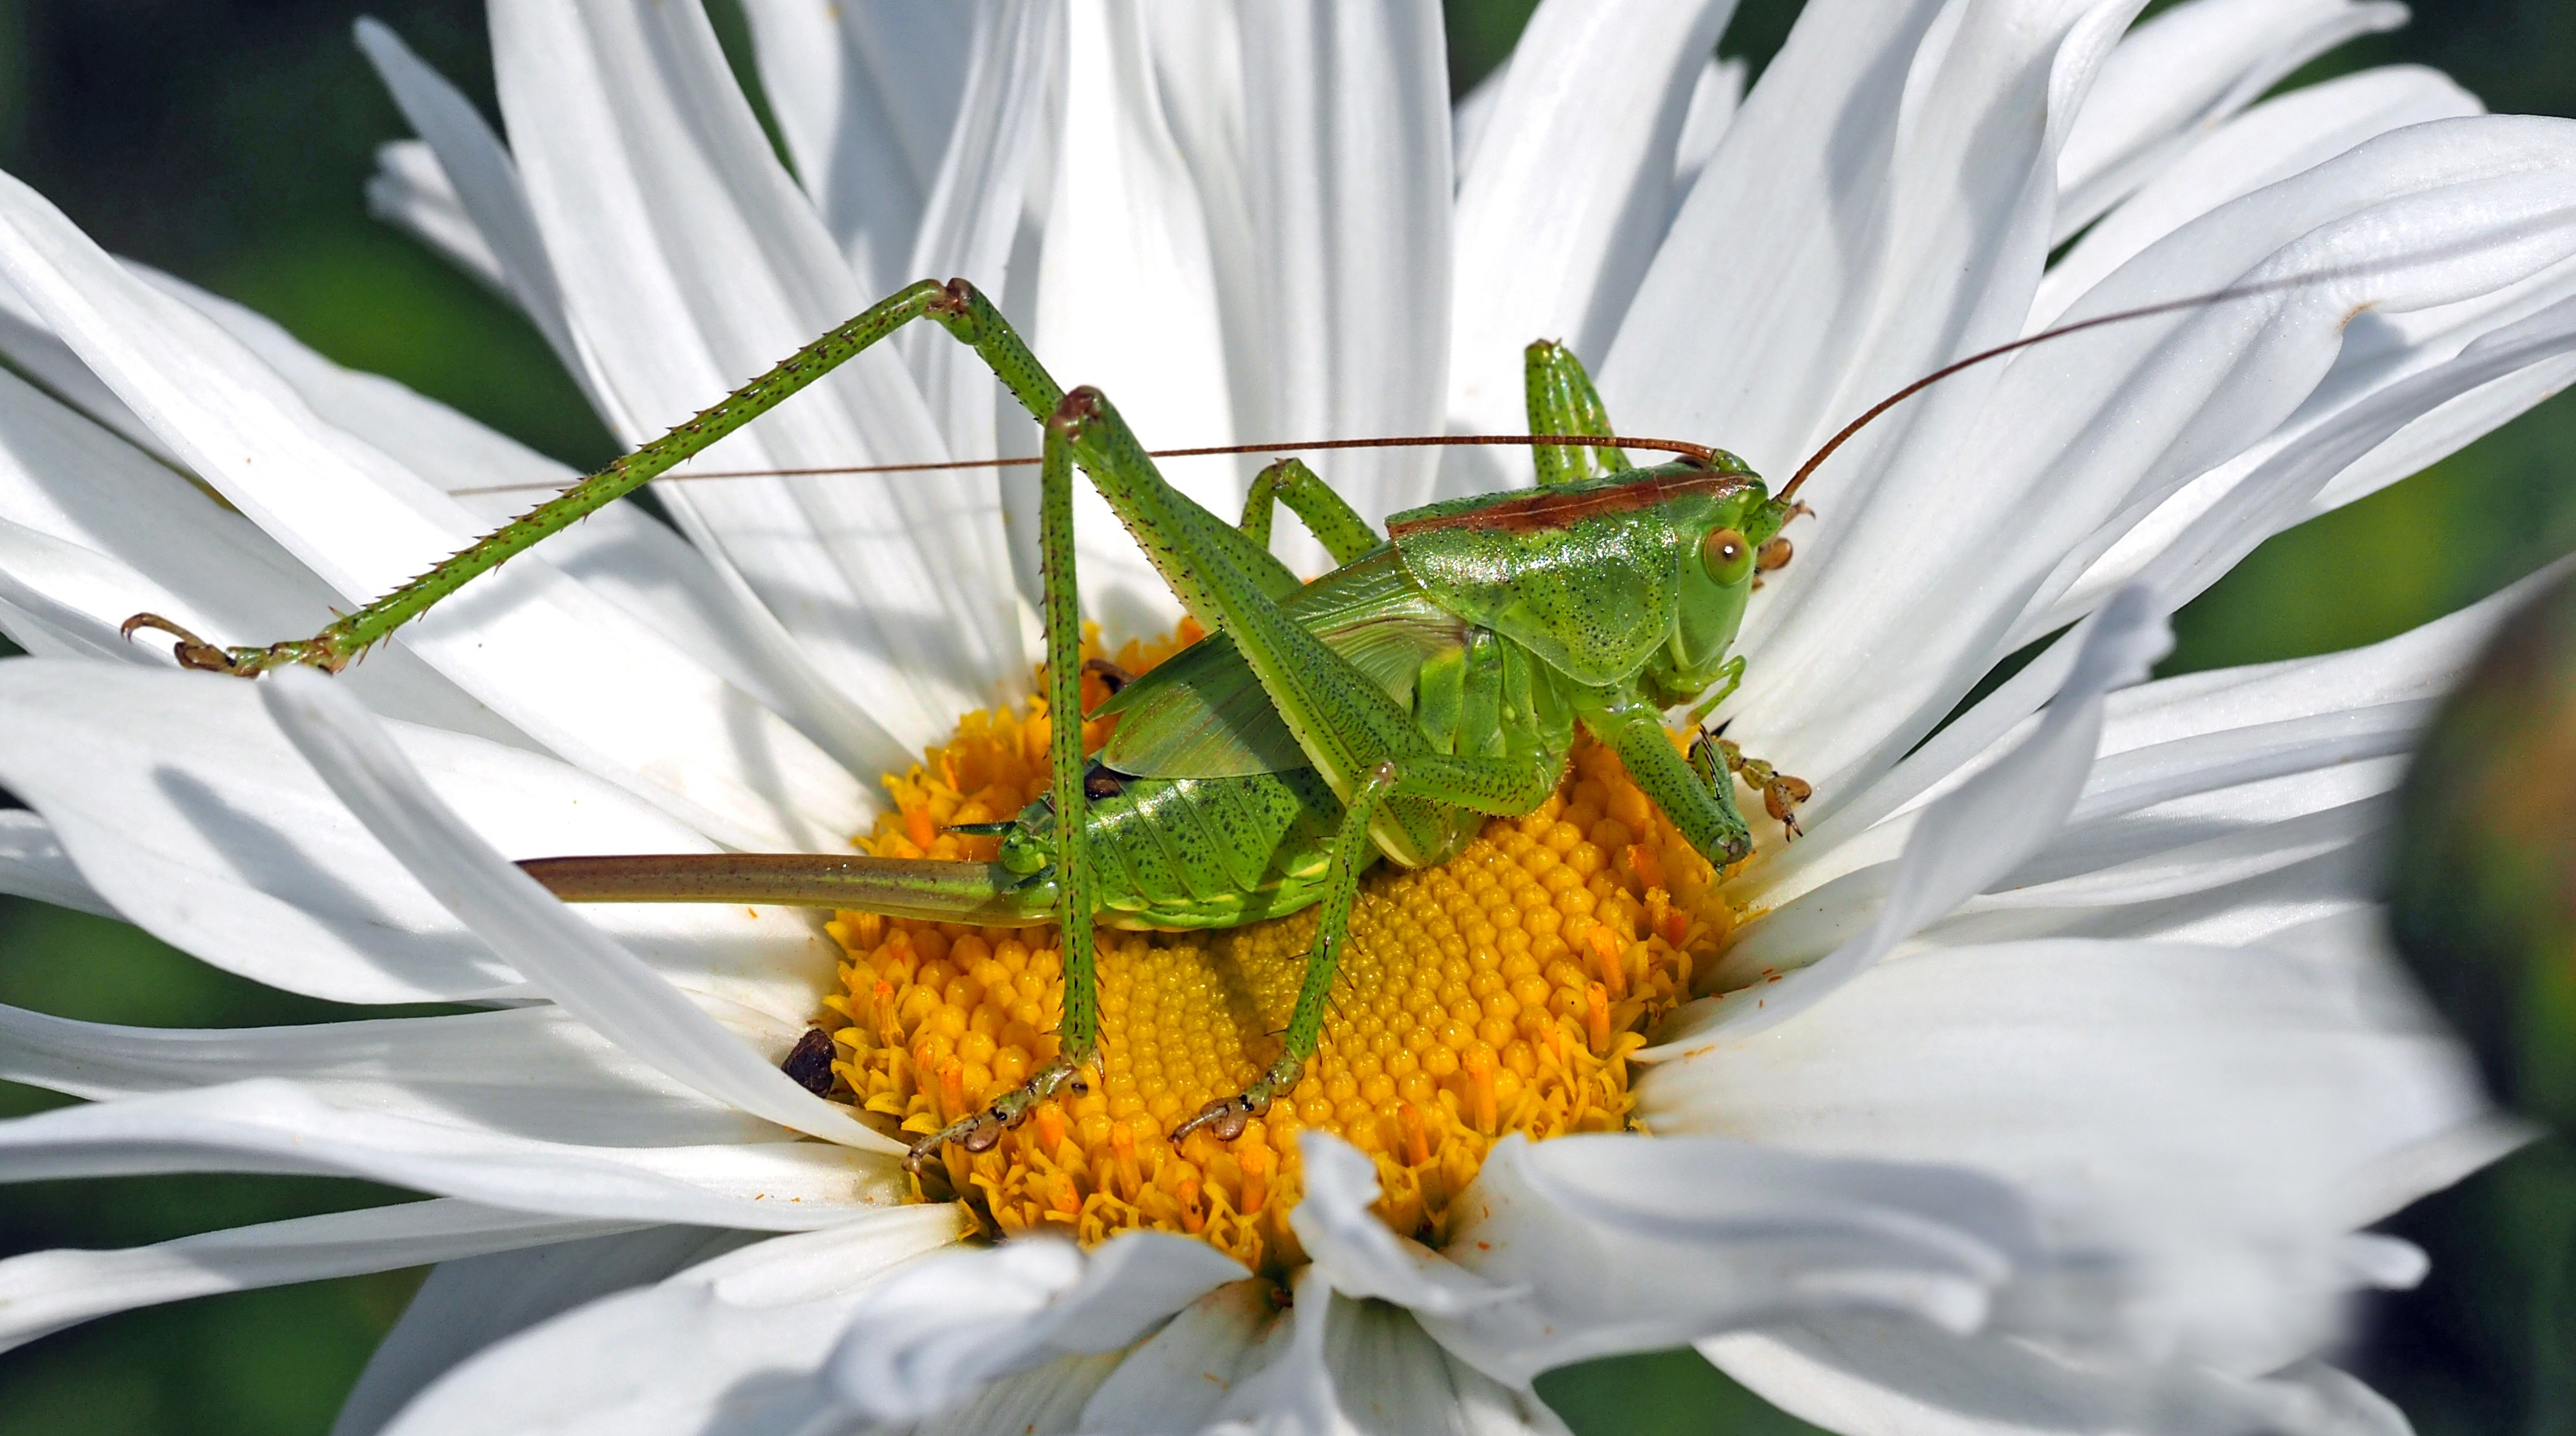 88668 download wallpaper Macro, Flower, Grasshopper, Chamomile, Camomile, Insect screensavers and pictures for free